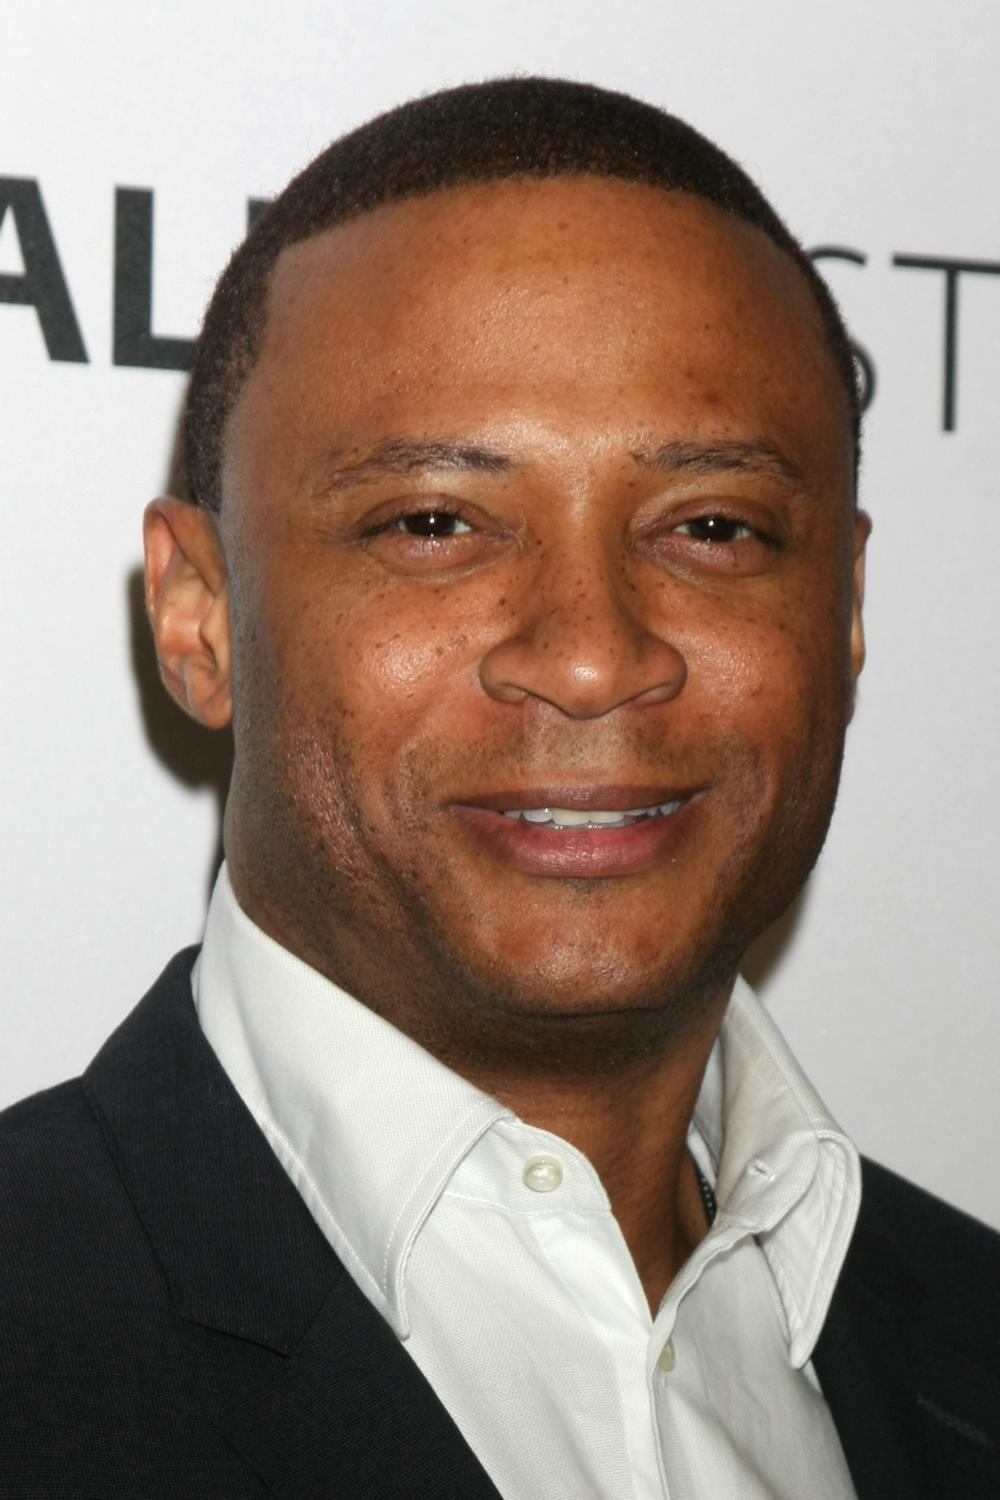 david ramsey girlfriendsdavid ramsey pwr, david rumsey map, david ramsey height, david ramsey actor, david ramsey financial, david ramsey dexter, david ramsey bench press, david ramsey podcast, david ramsay hay, david ramsey map collection, david ramsey instagram, david ramsey training, david ramsey girlfriends, david ramsey arrow, david ramsey workout, david ramsey twitter, david ramsey net worth, david ramsey wife, david ramsey imdb, david ramsey wiki